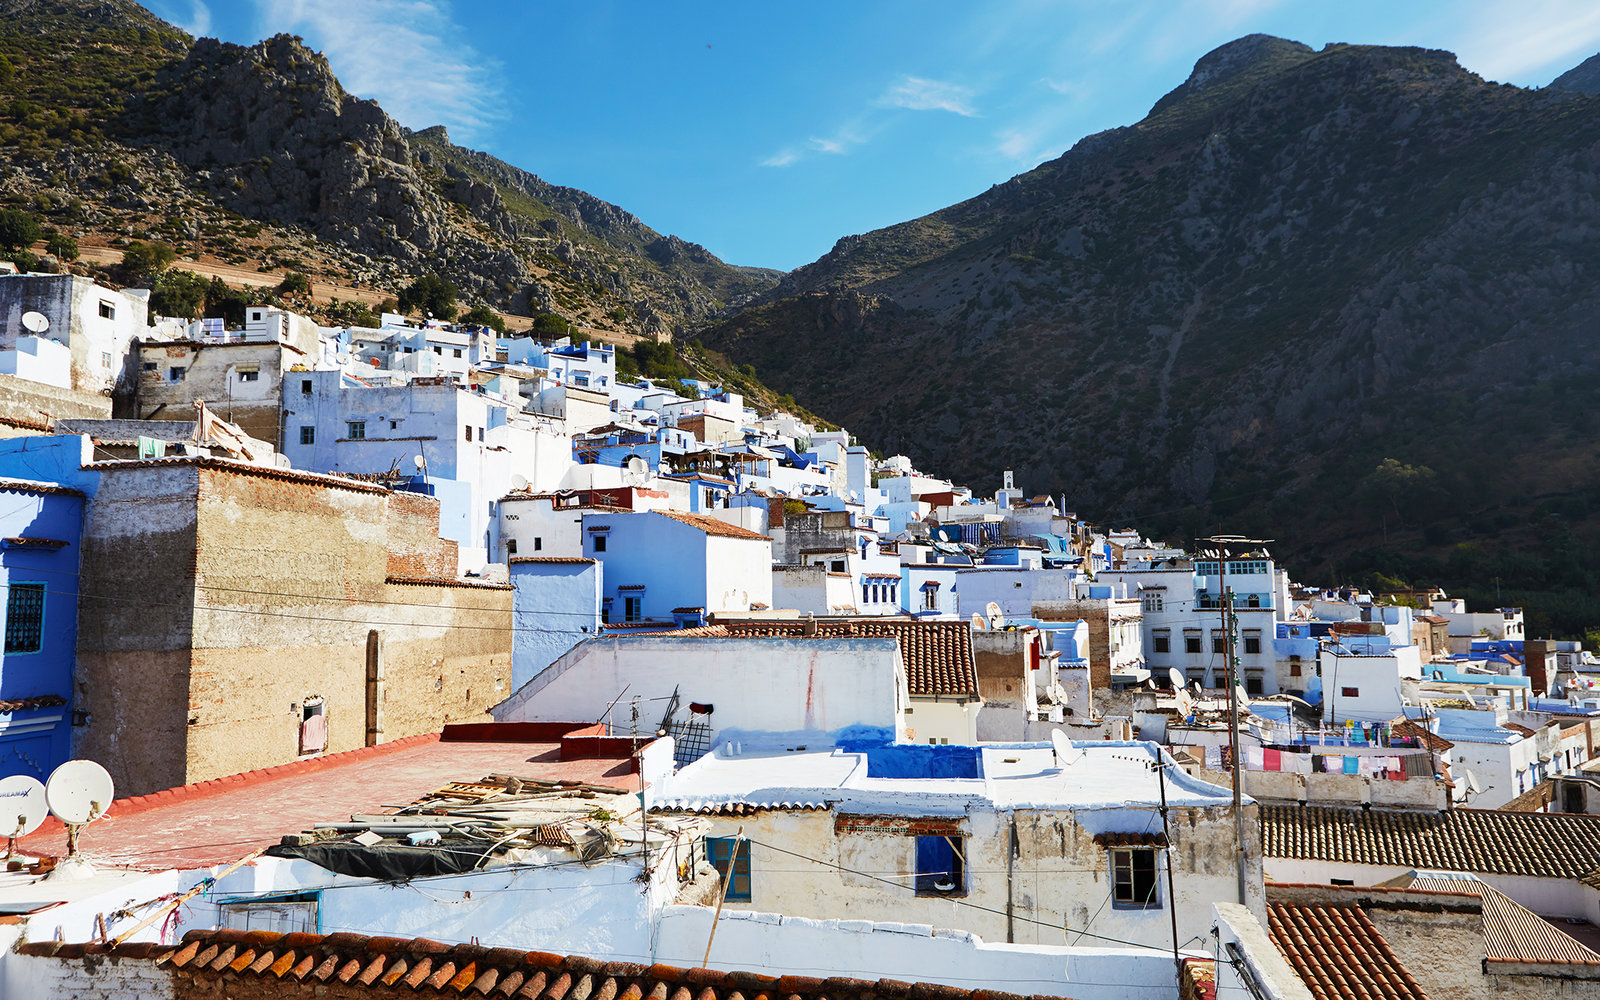 Chefchaouen Mountain City in Morocco